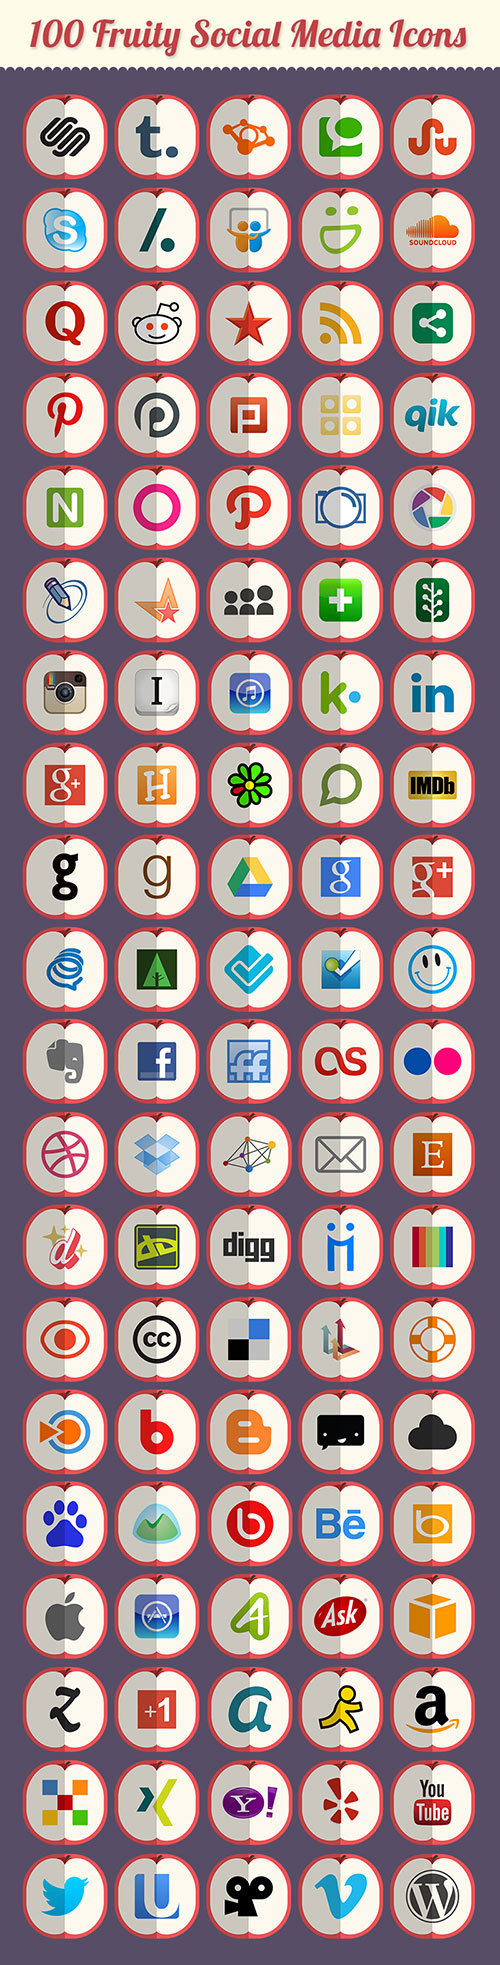 free-100-fruity-social-media-icons-ai